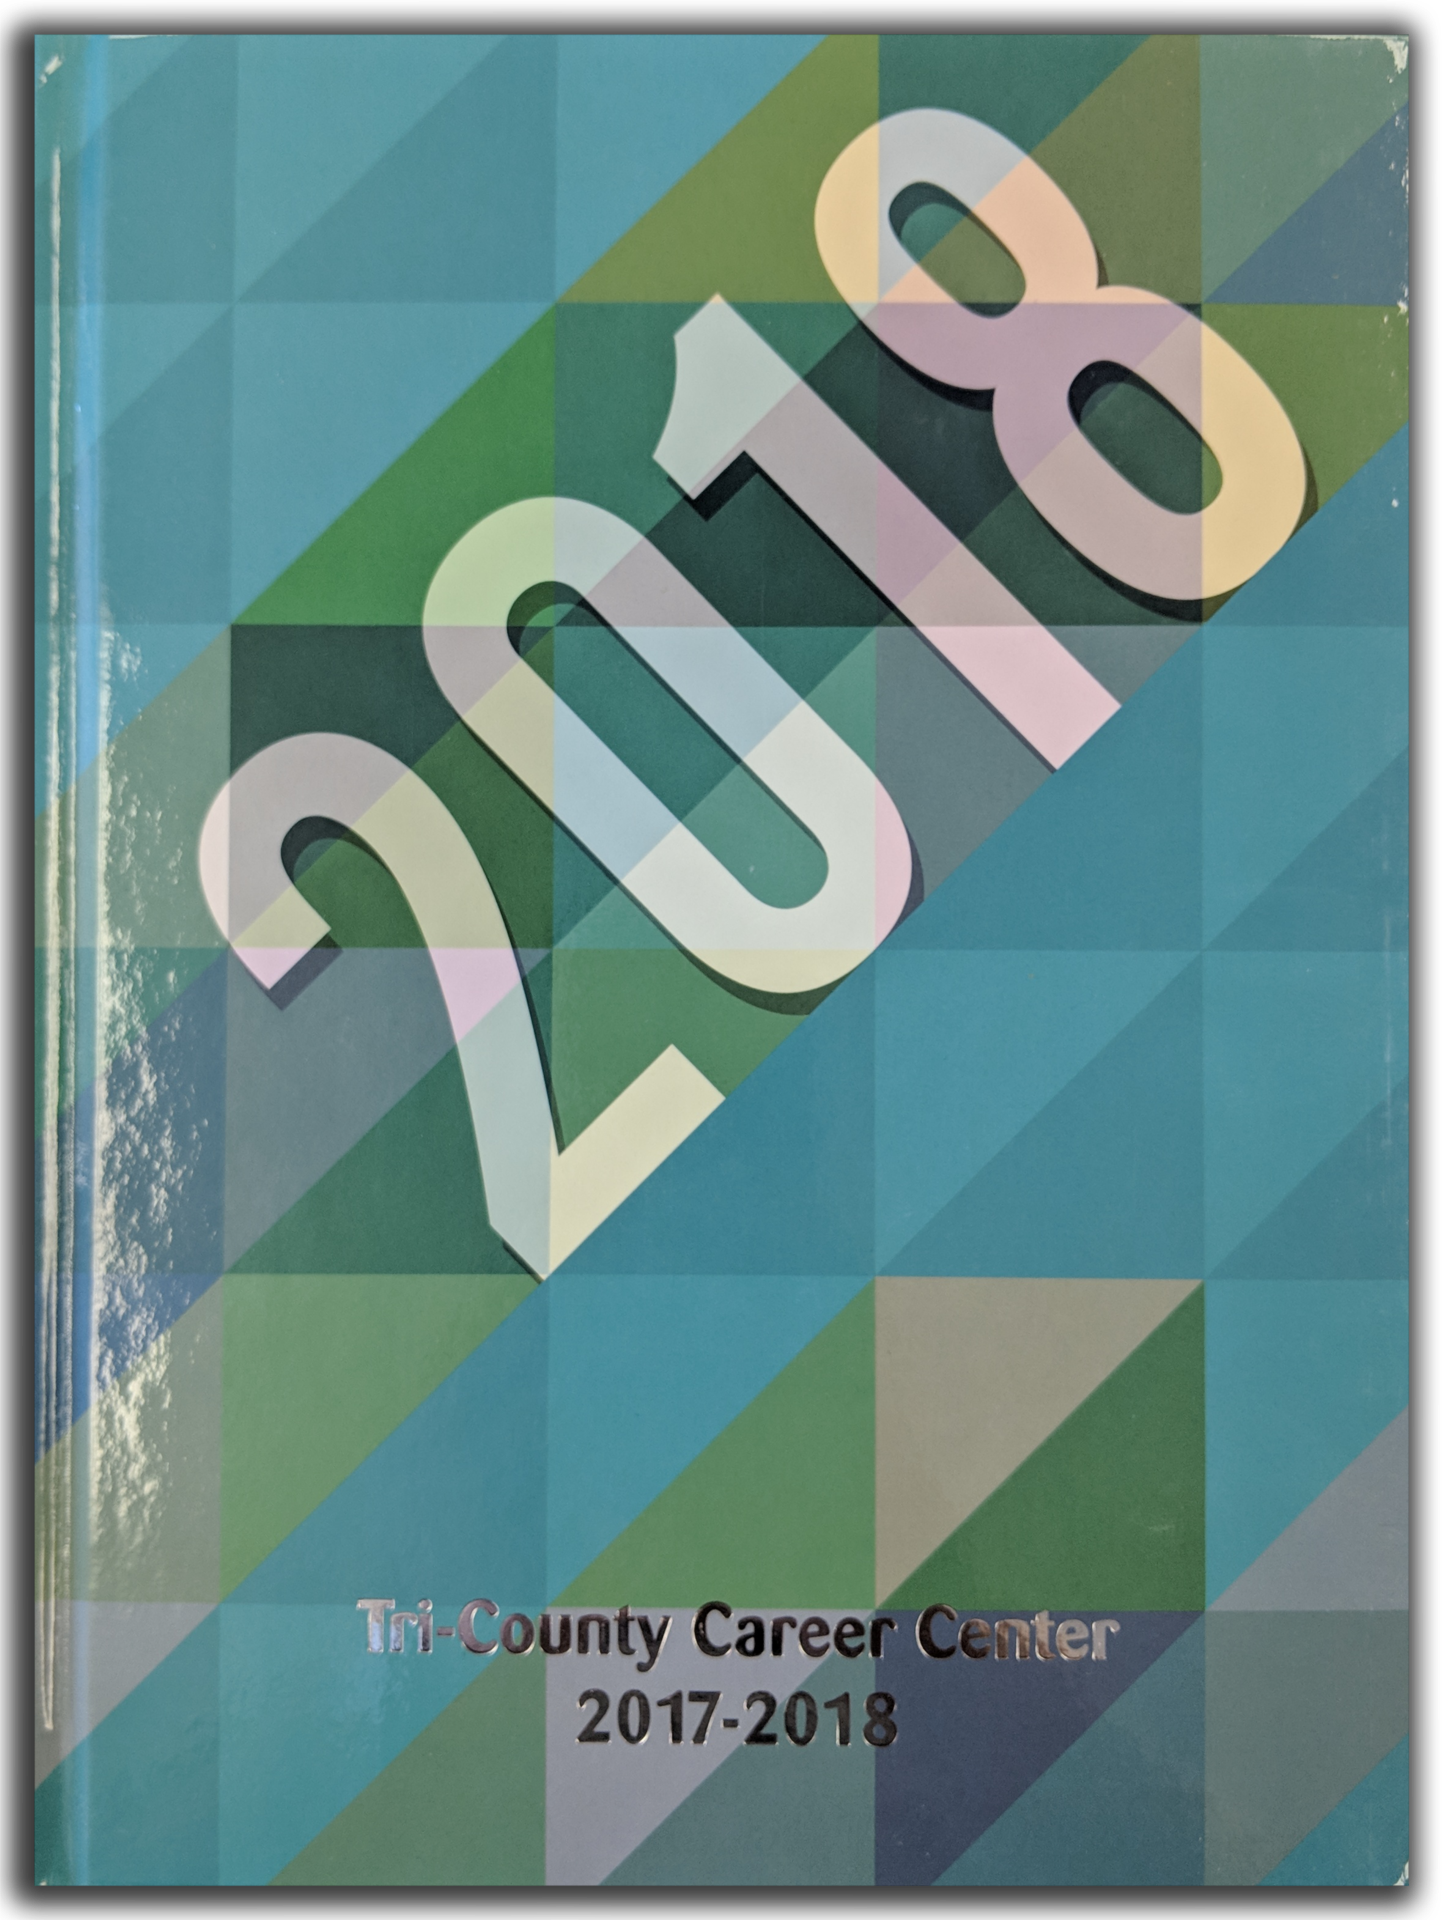 Tri-County Career Center 2017-2018 Yearbook